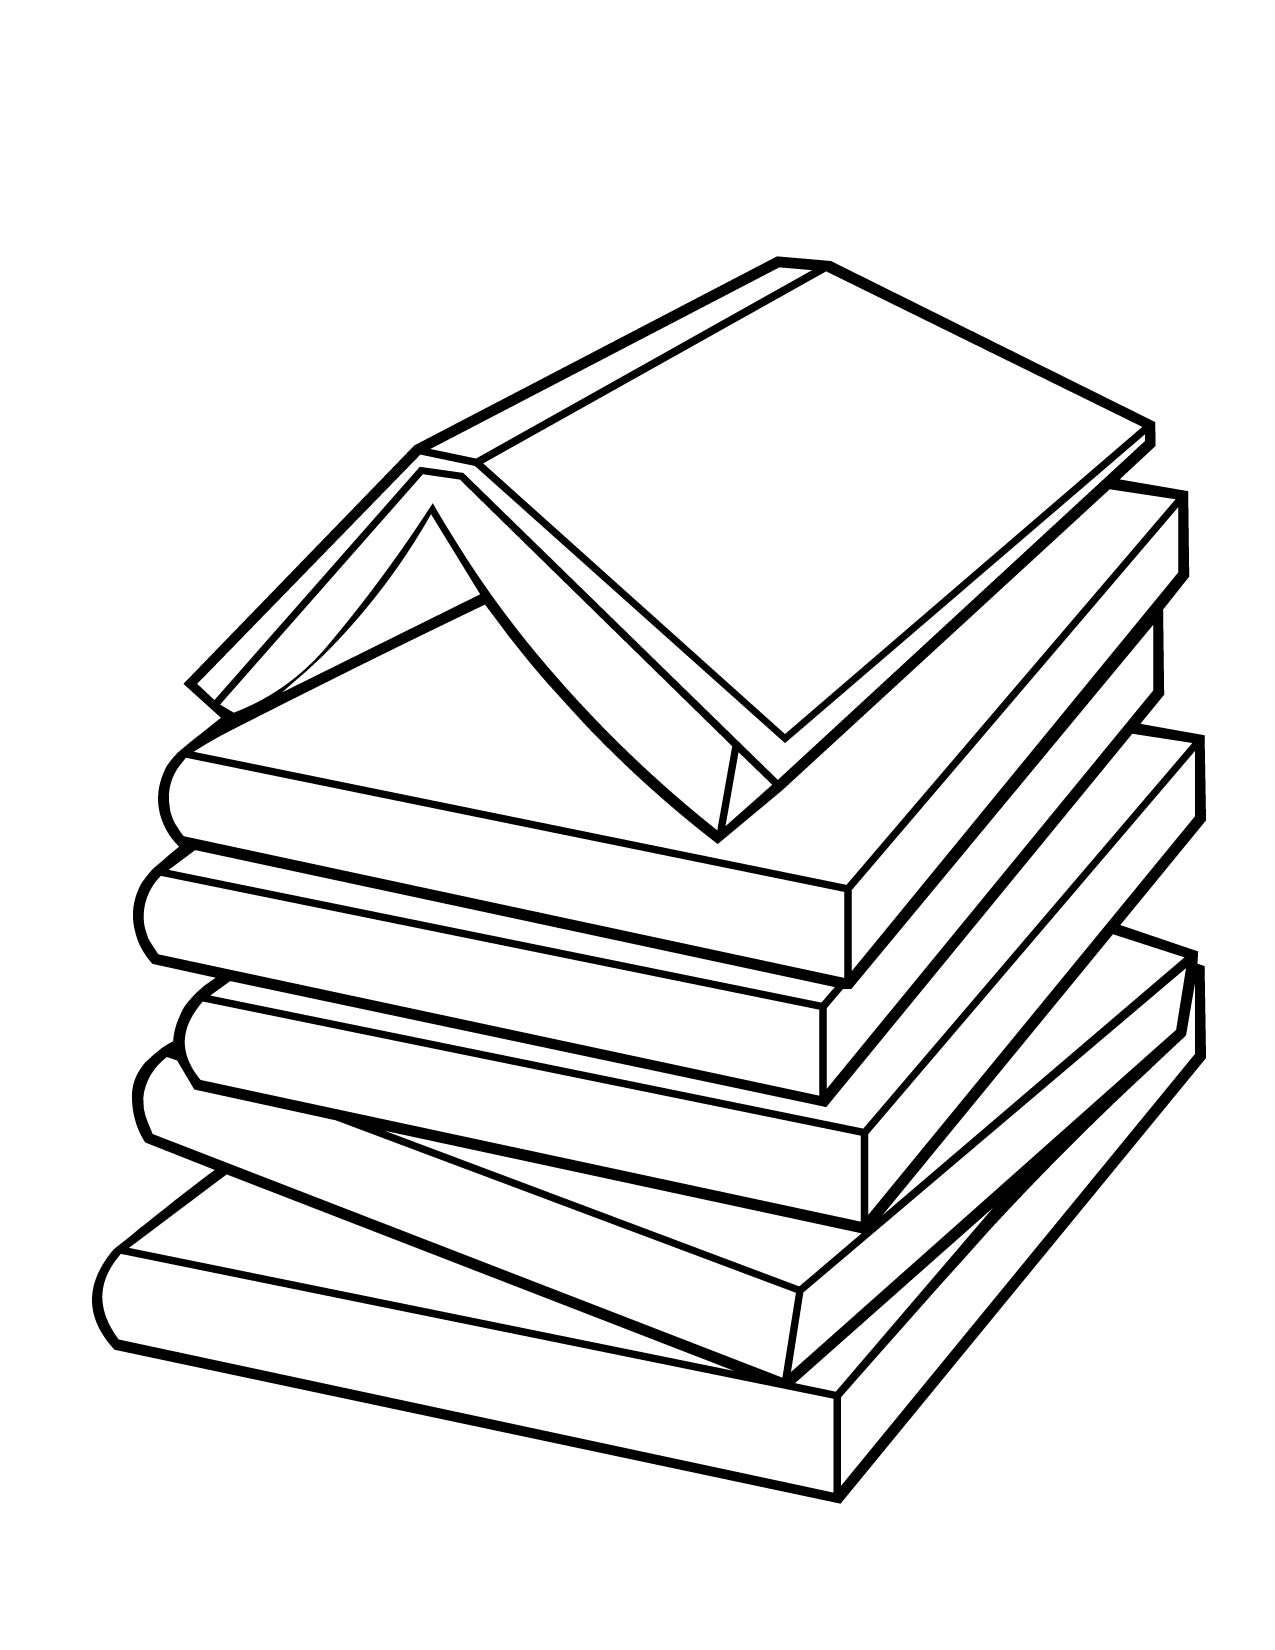 book coloring page handipoints - Color Book Pages